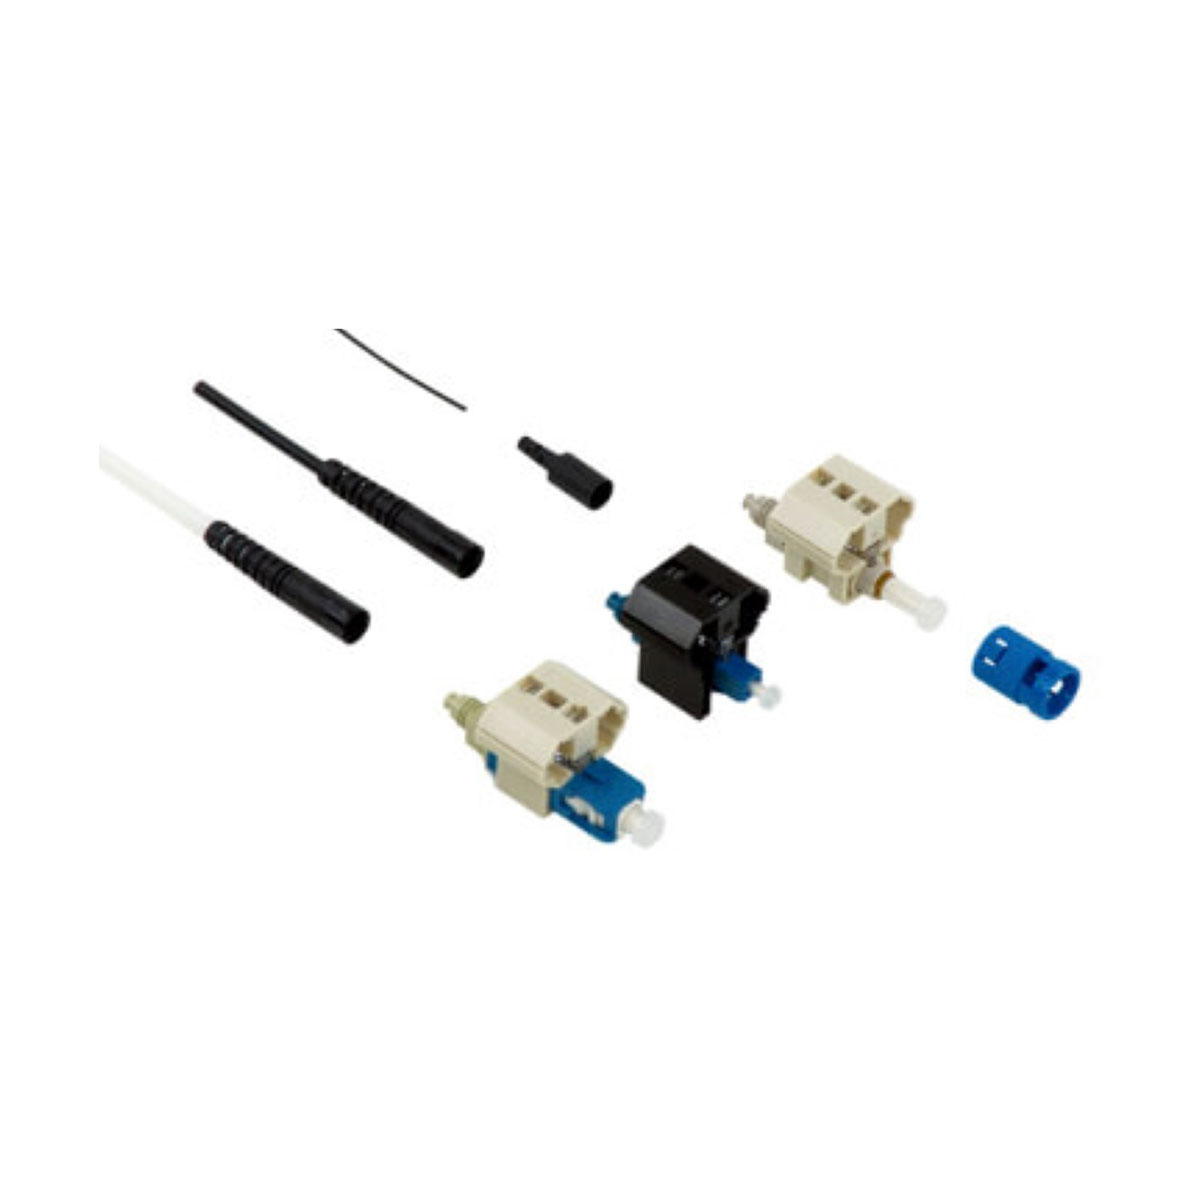 Conectores mecánicos de Fibra Óptica AFL FASTConnect 6GK1900-1 FastConnects-6GK1900-1